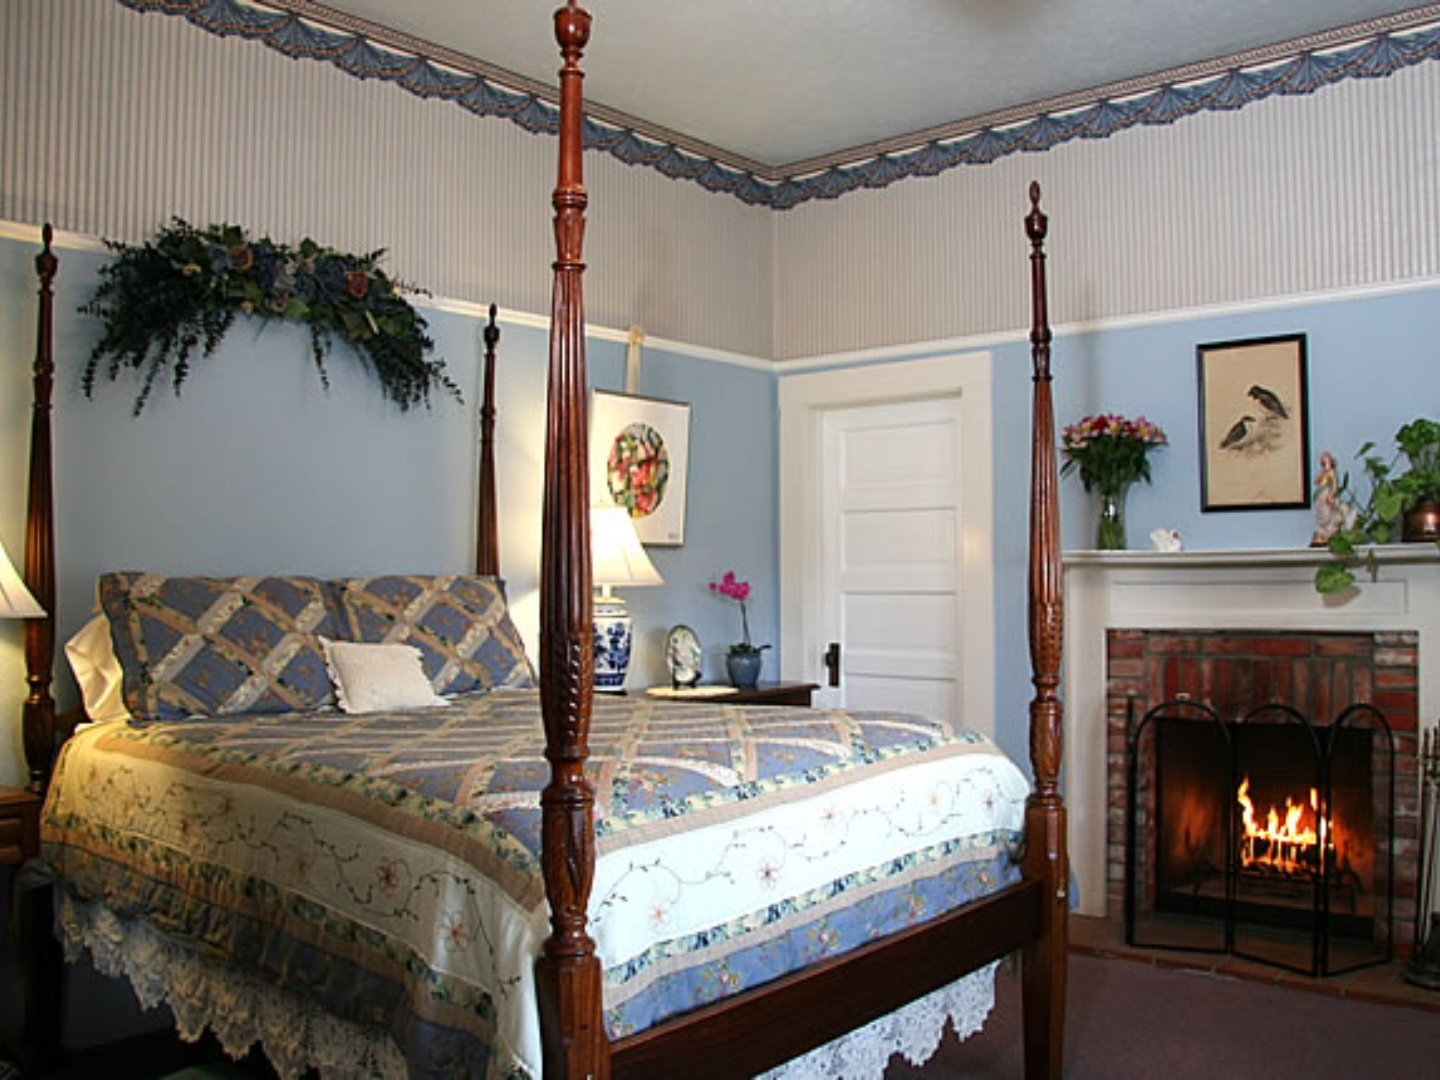 A bedroom with a bed and a fireplace at Raford Inn.